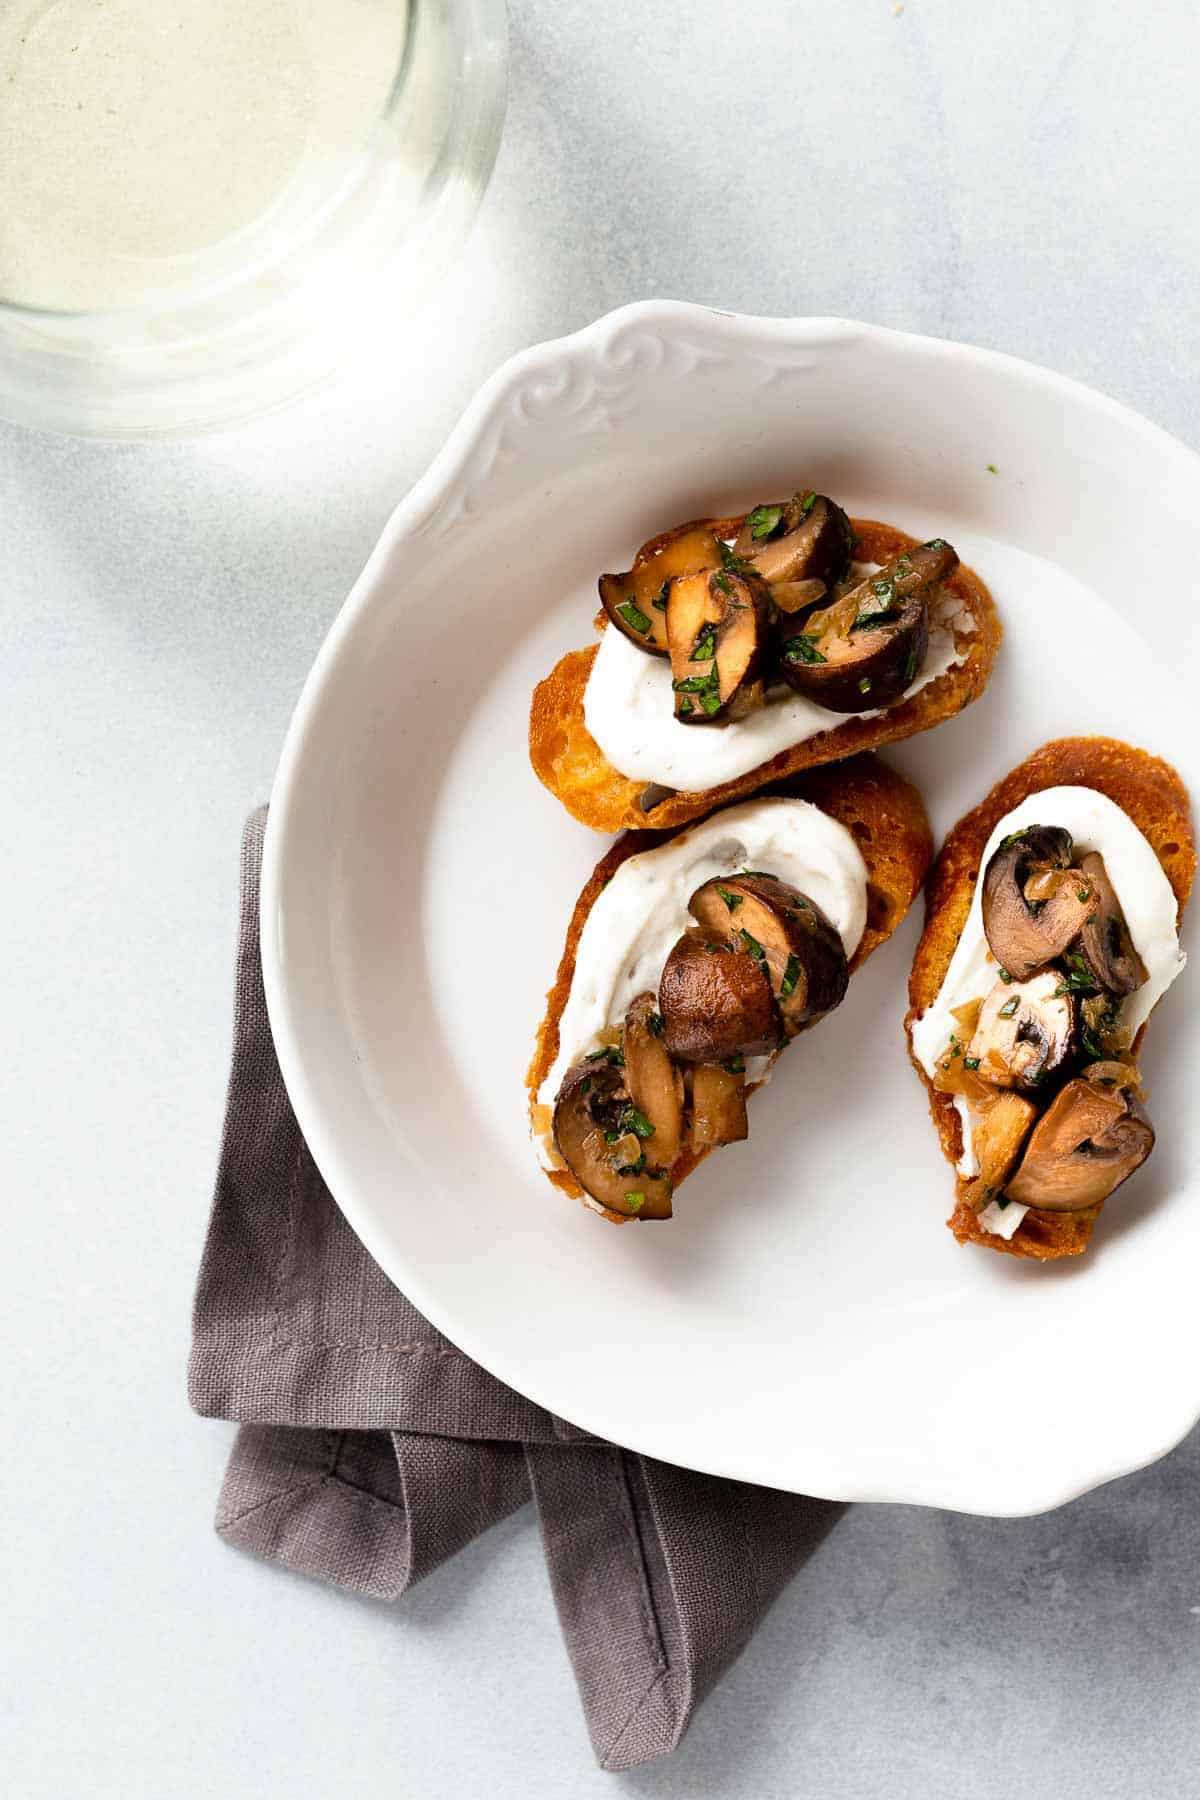 White serving dish with 3 crostini's with white sauce and mushrooms on top